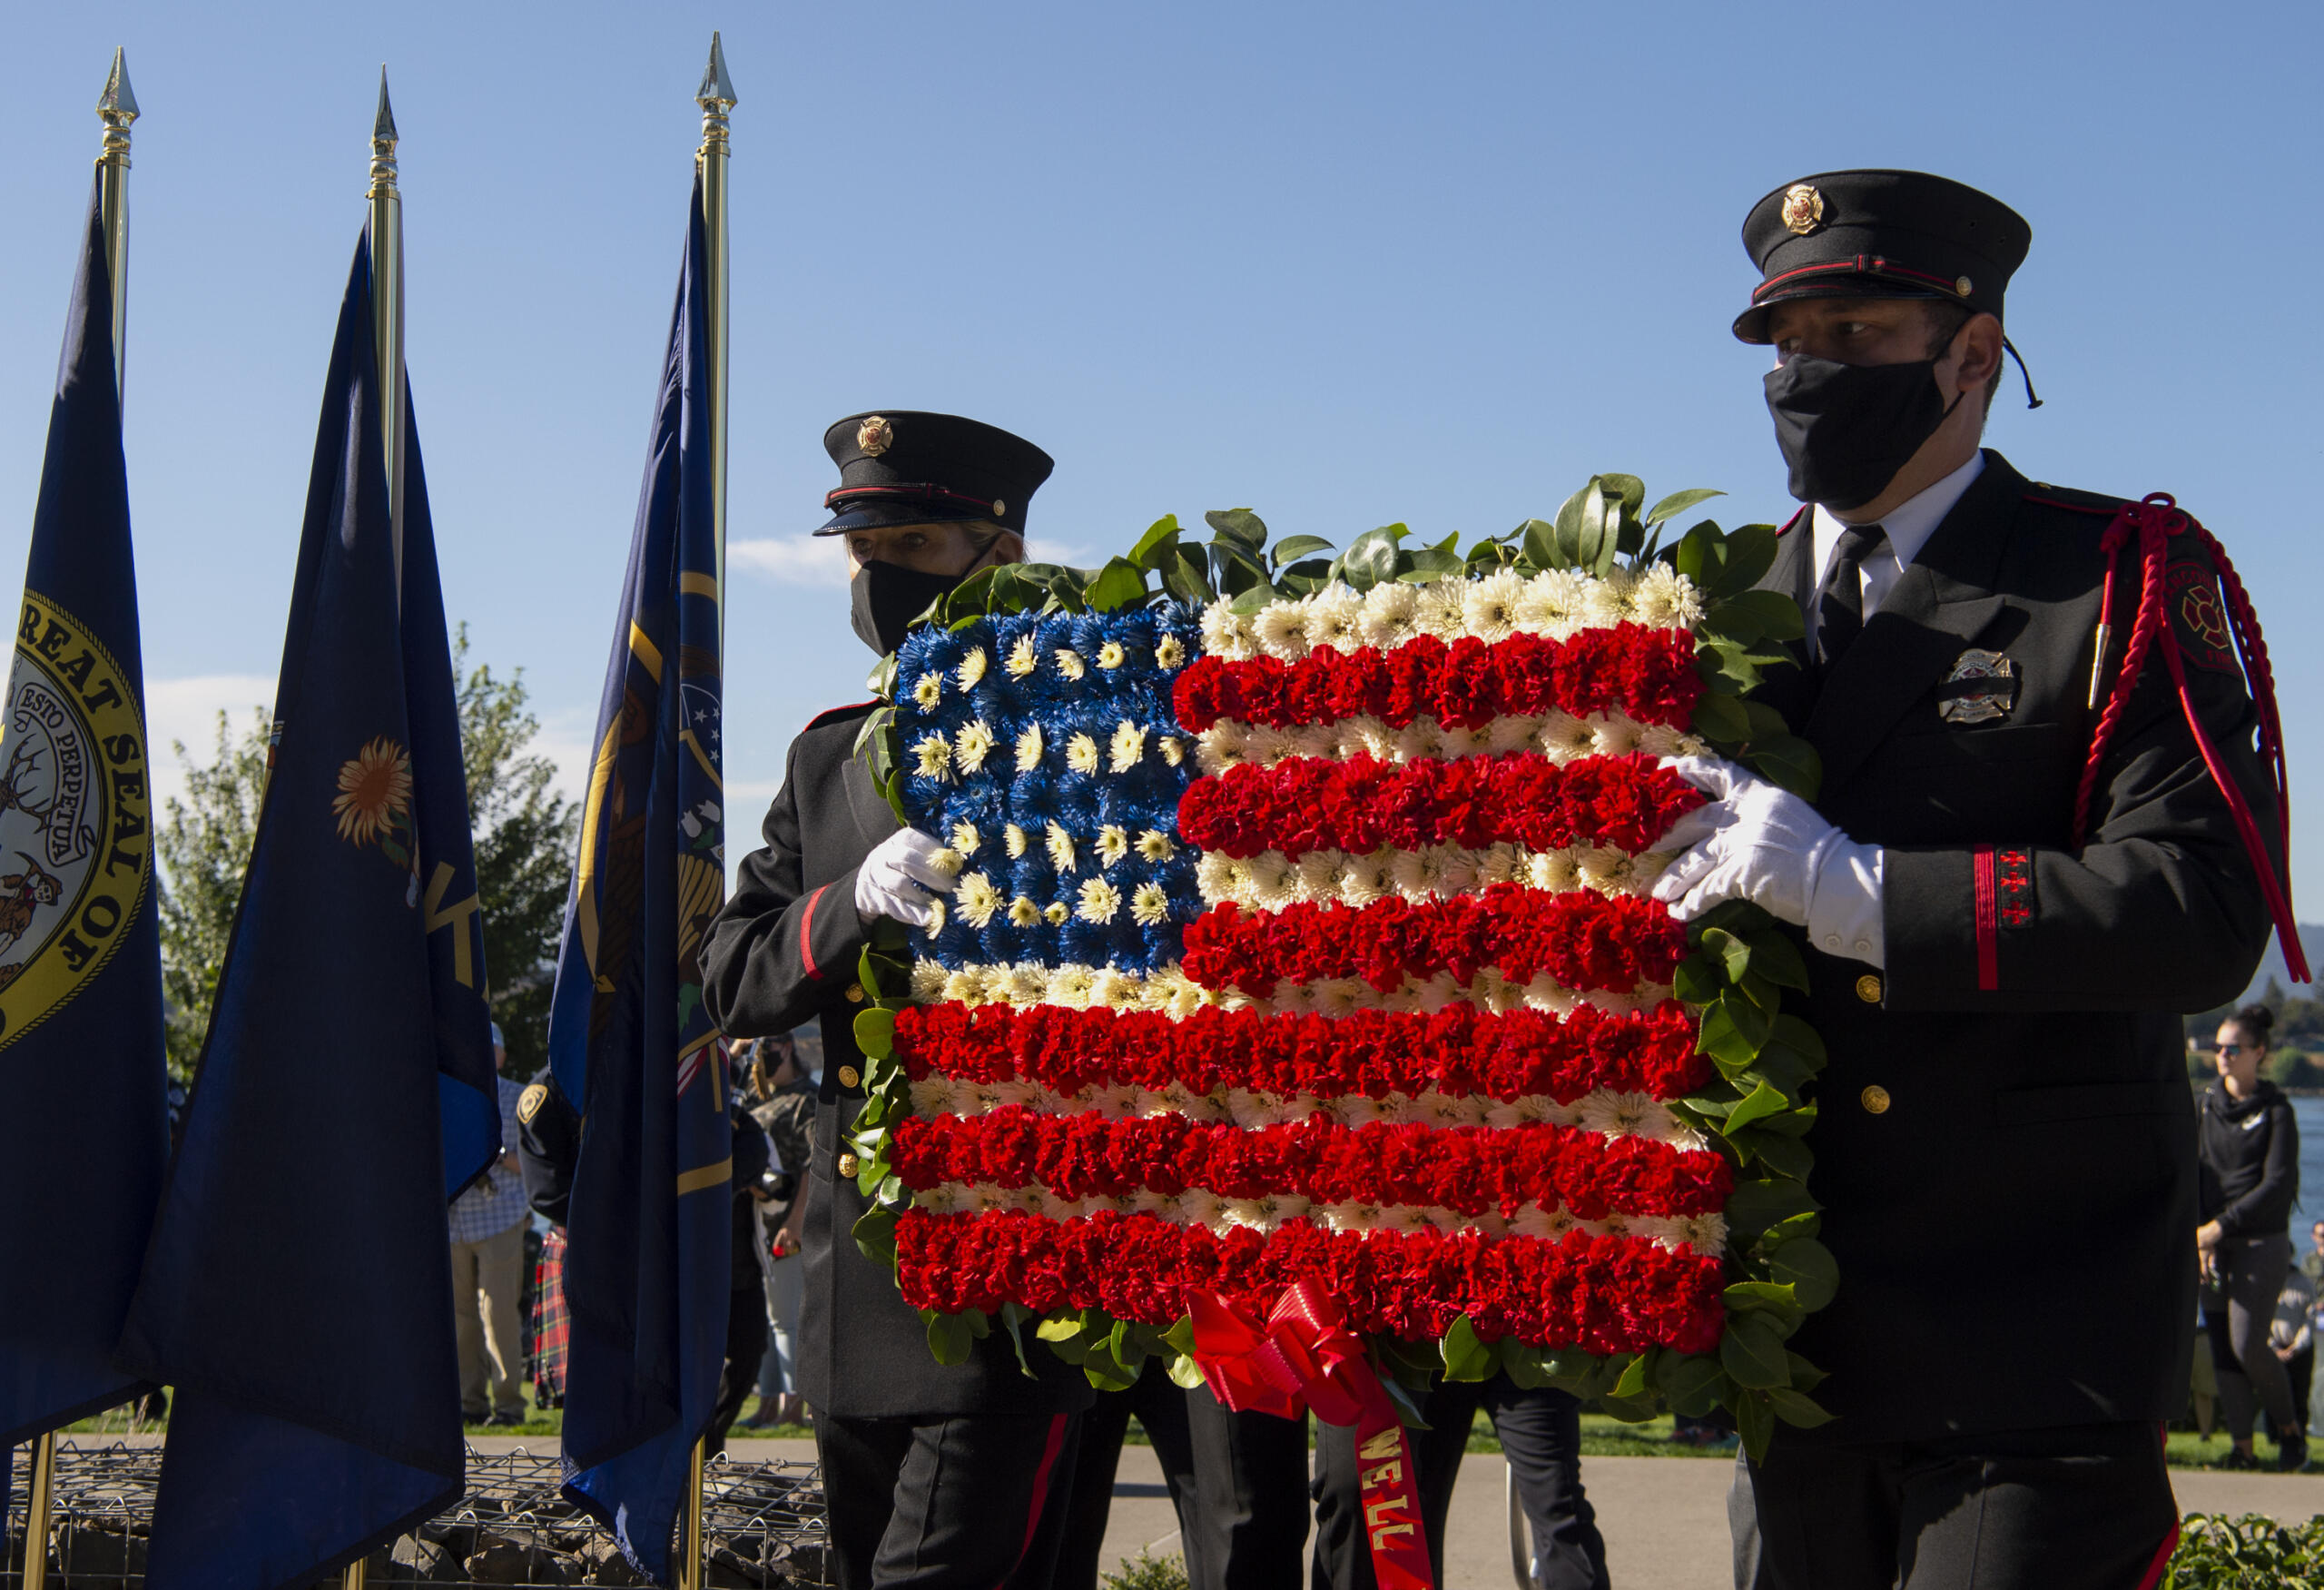 Members of the Vancouver Fire Department Honor Guard present a wreath during the 9/11 Remembrance Ceremony on Saturday, Sept. 11, 2021, at Waterfront Park in downtown Vancouver.